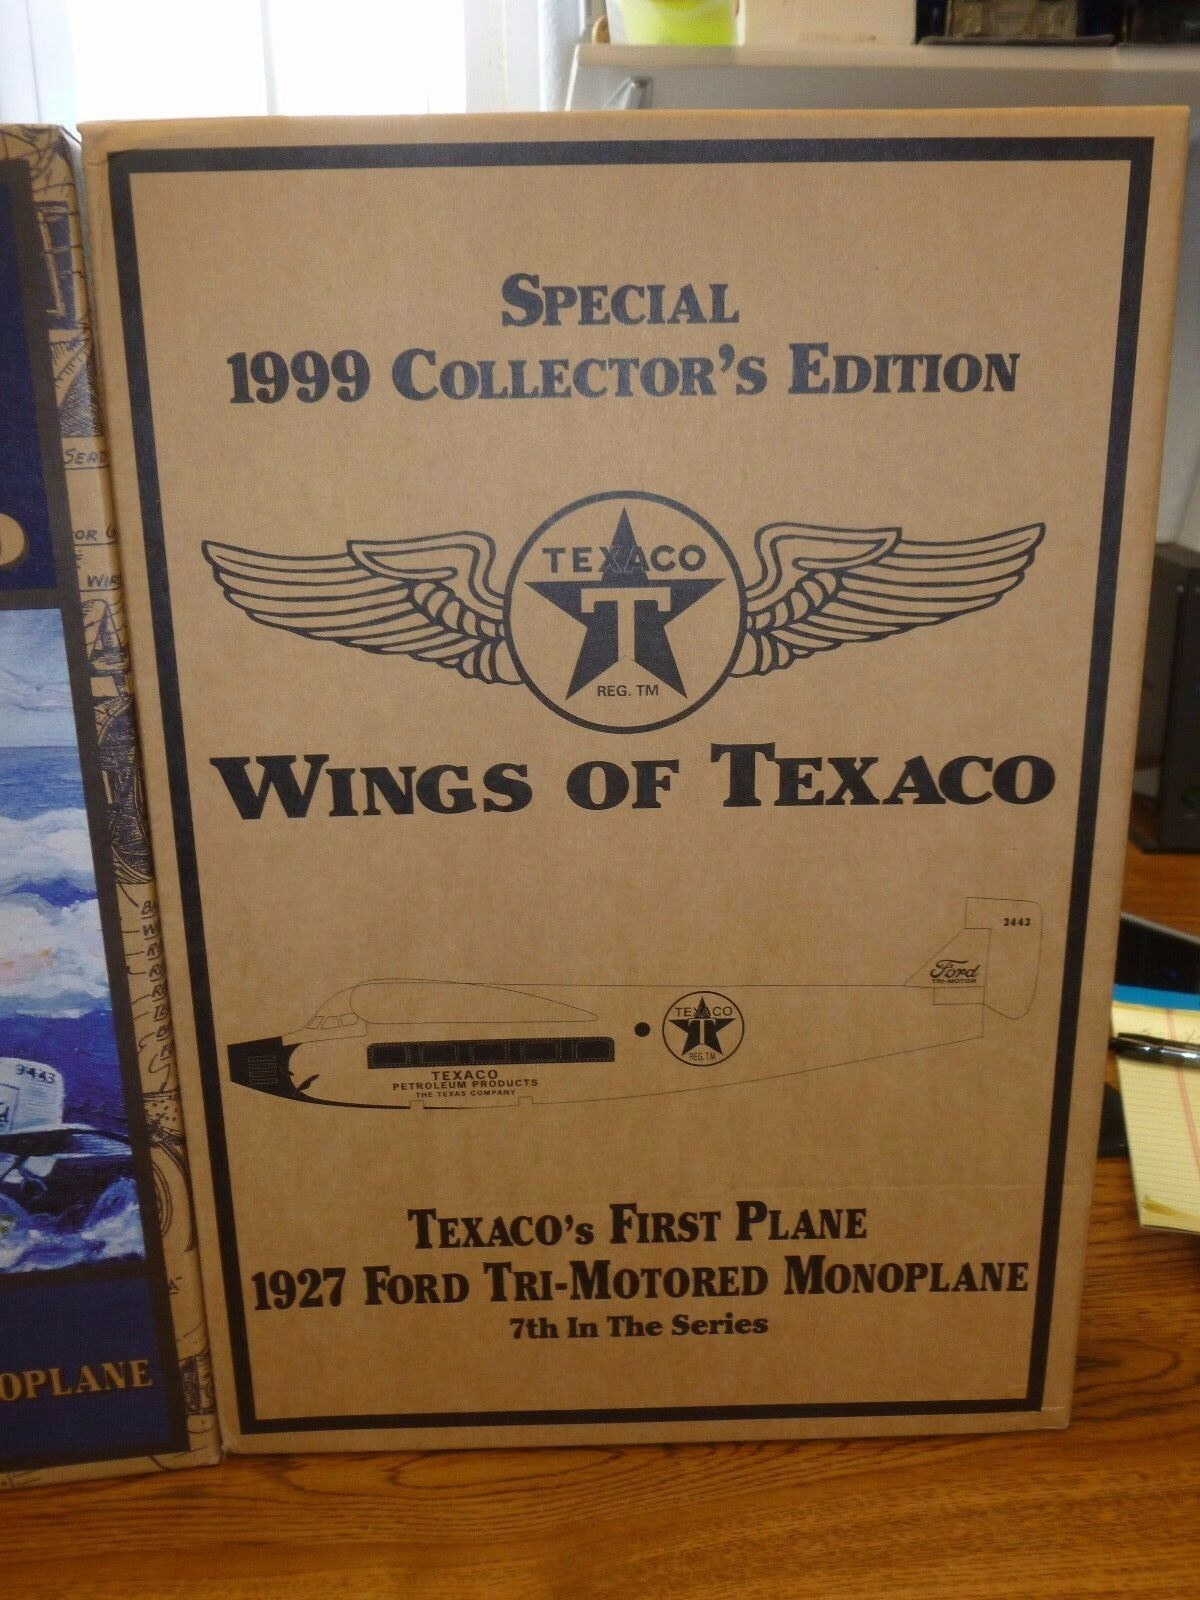 Collector Edition gold TEXACO AIRPLANE AIRPLANE AIRPLANE BANK - 1927 FORD TRI-MOTORED MONOPLANE 16157b